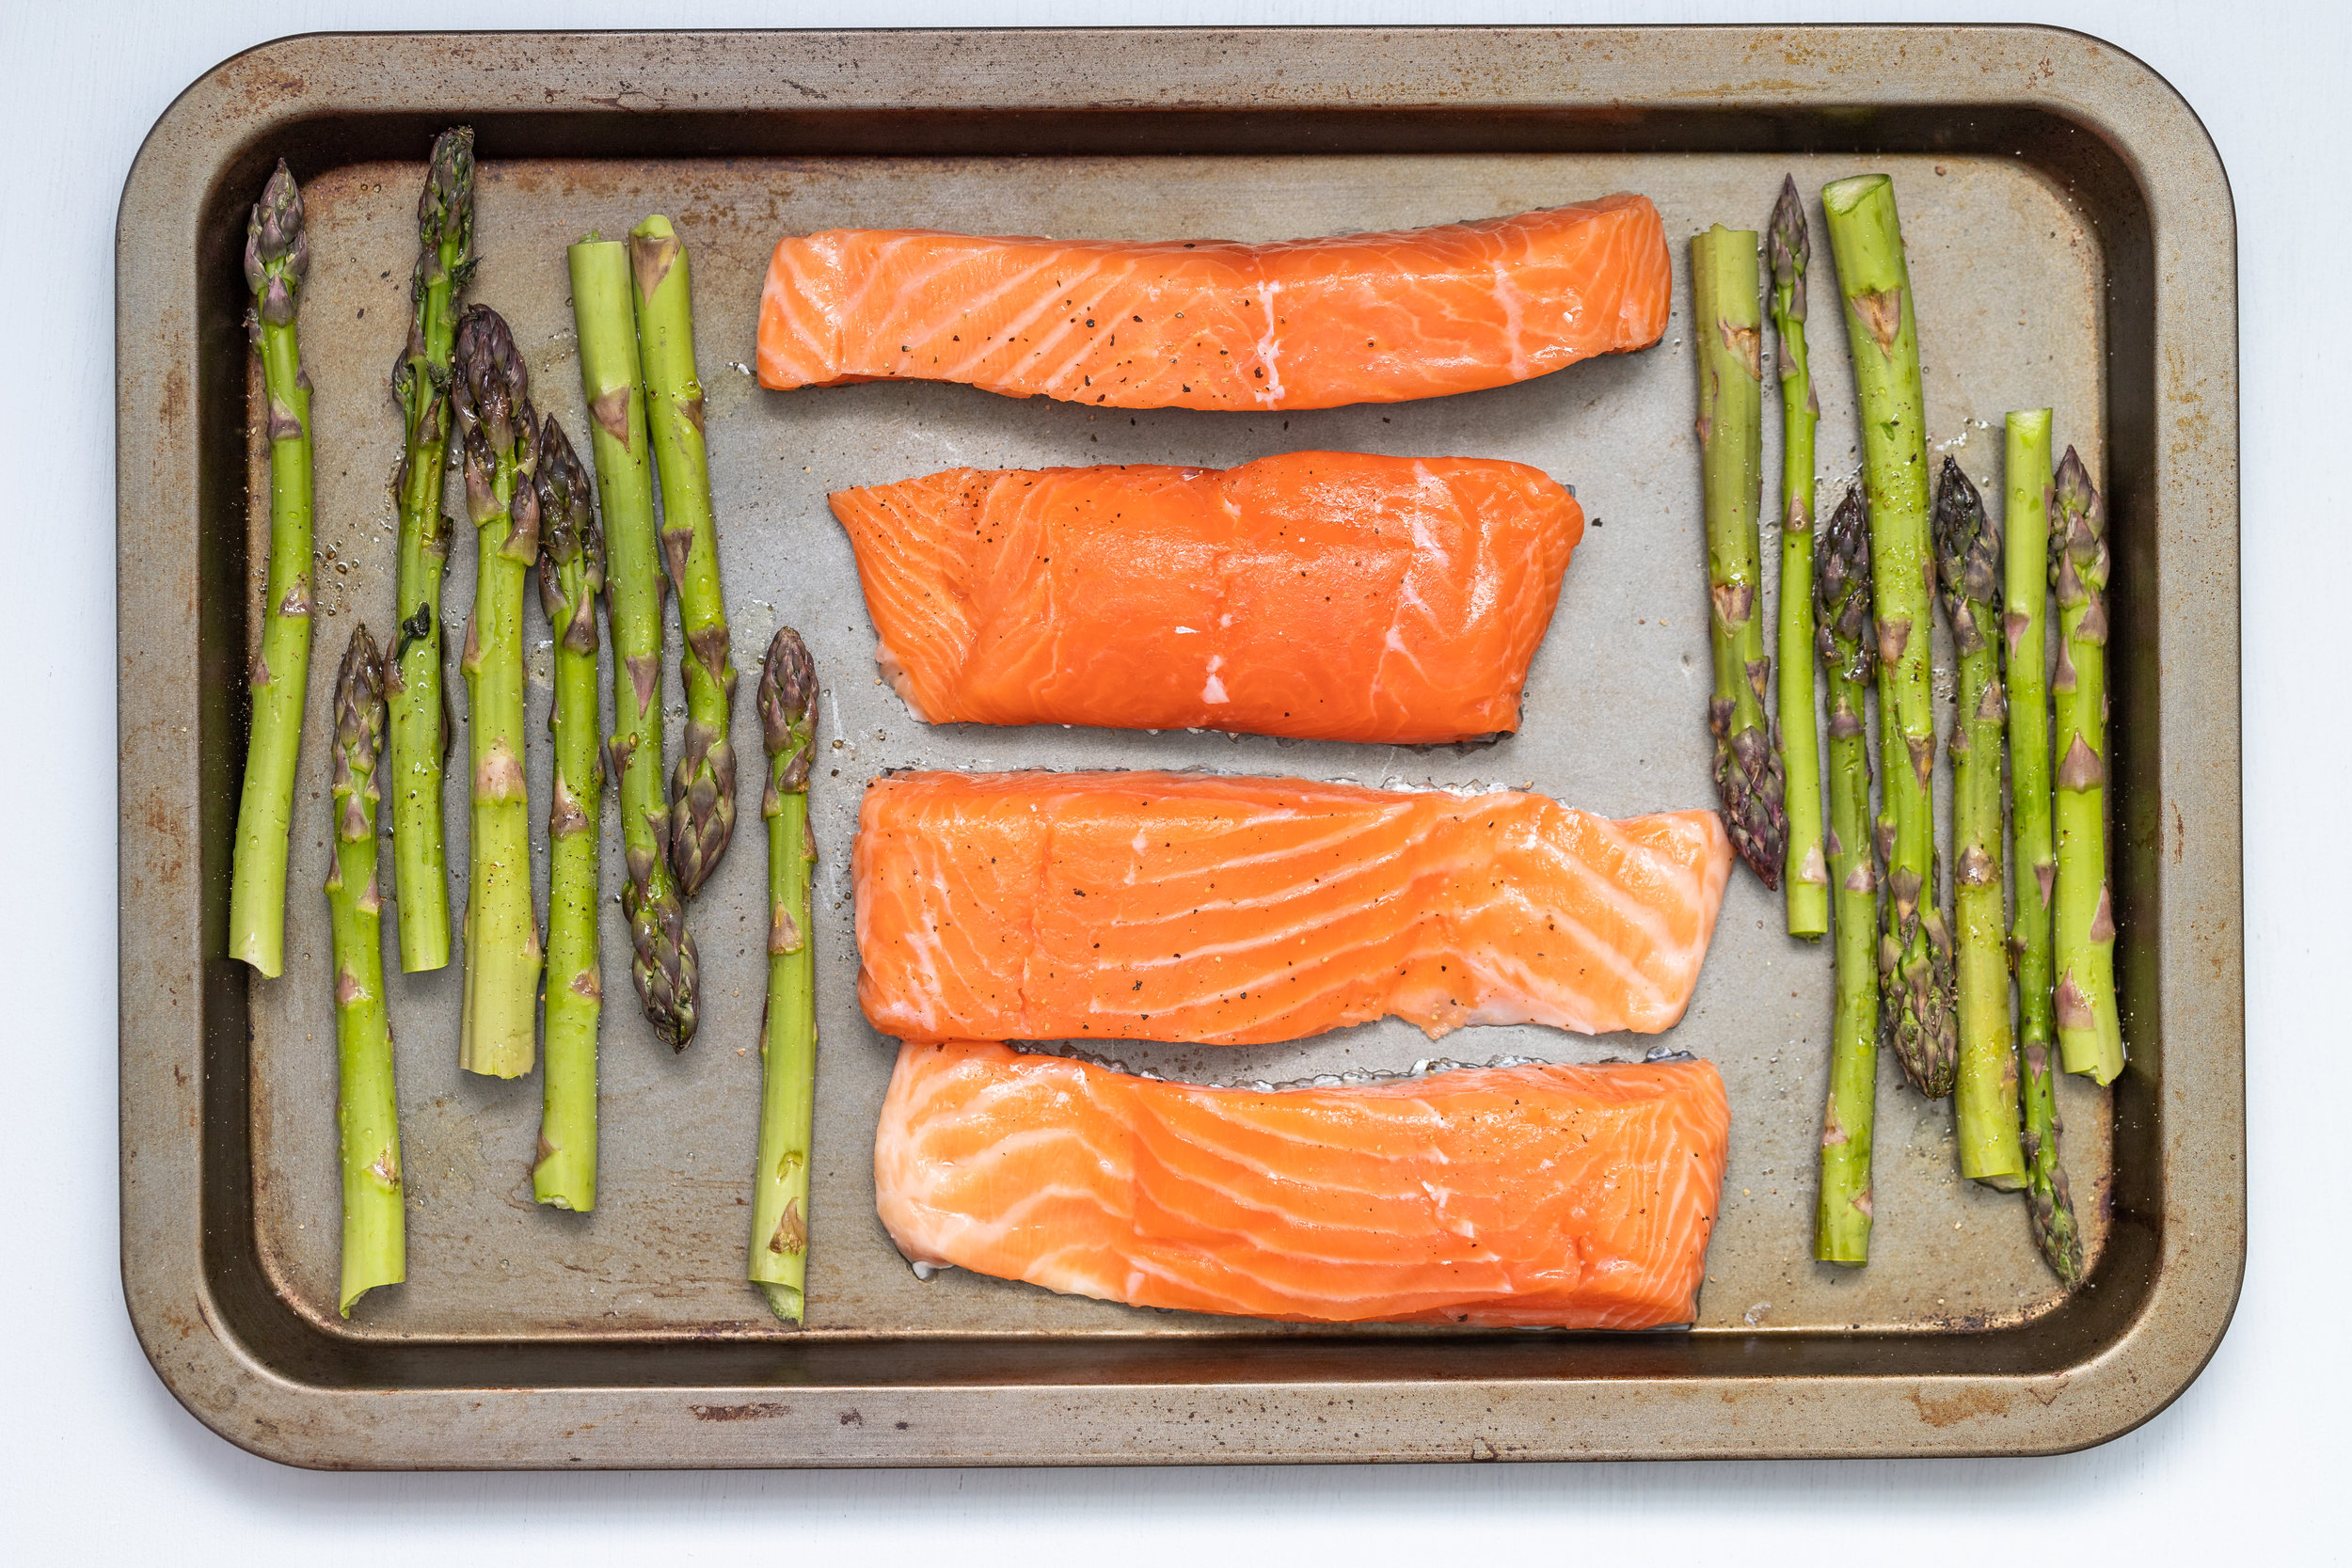 A Classic loaded with Omega 3's!